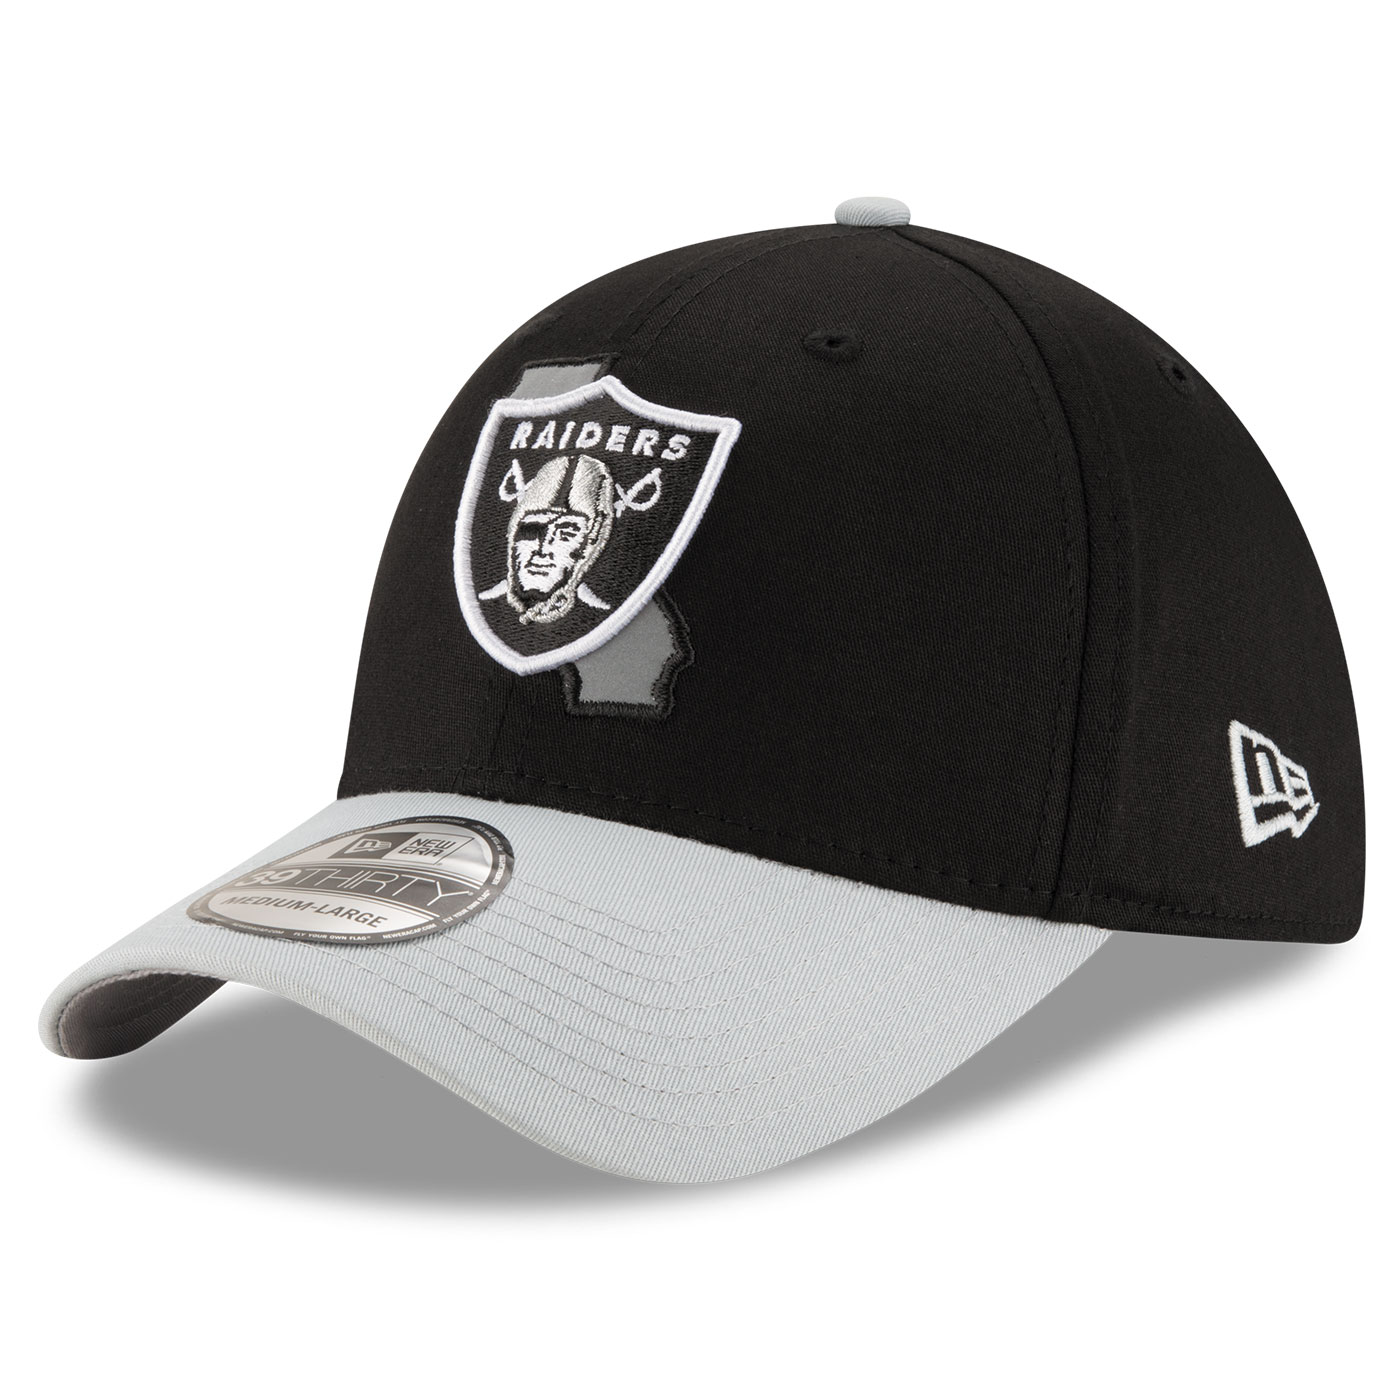 Raiders New Era 39Thirty State Reflective Cap ed8c04bf464c